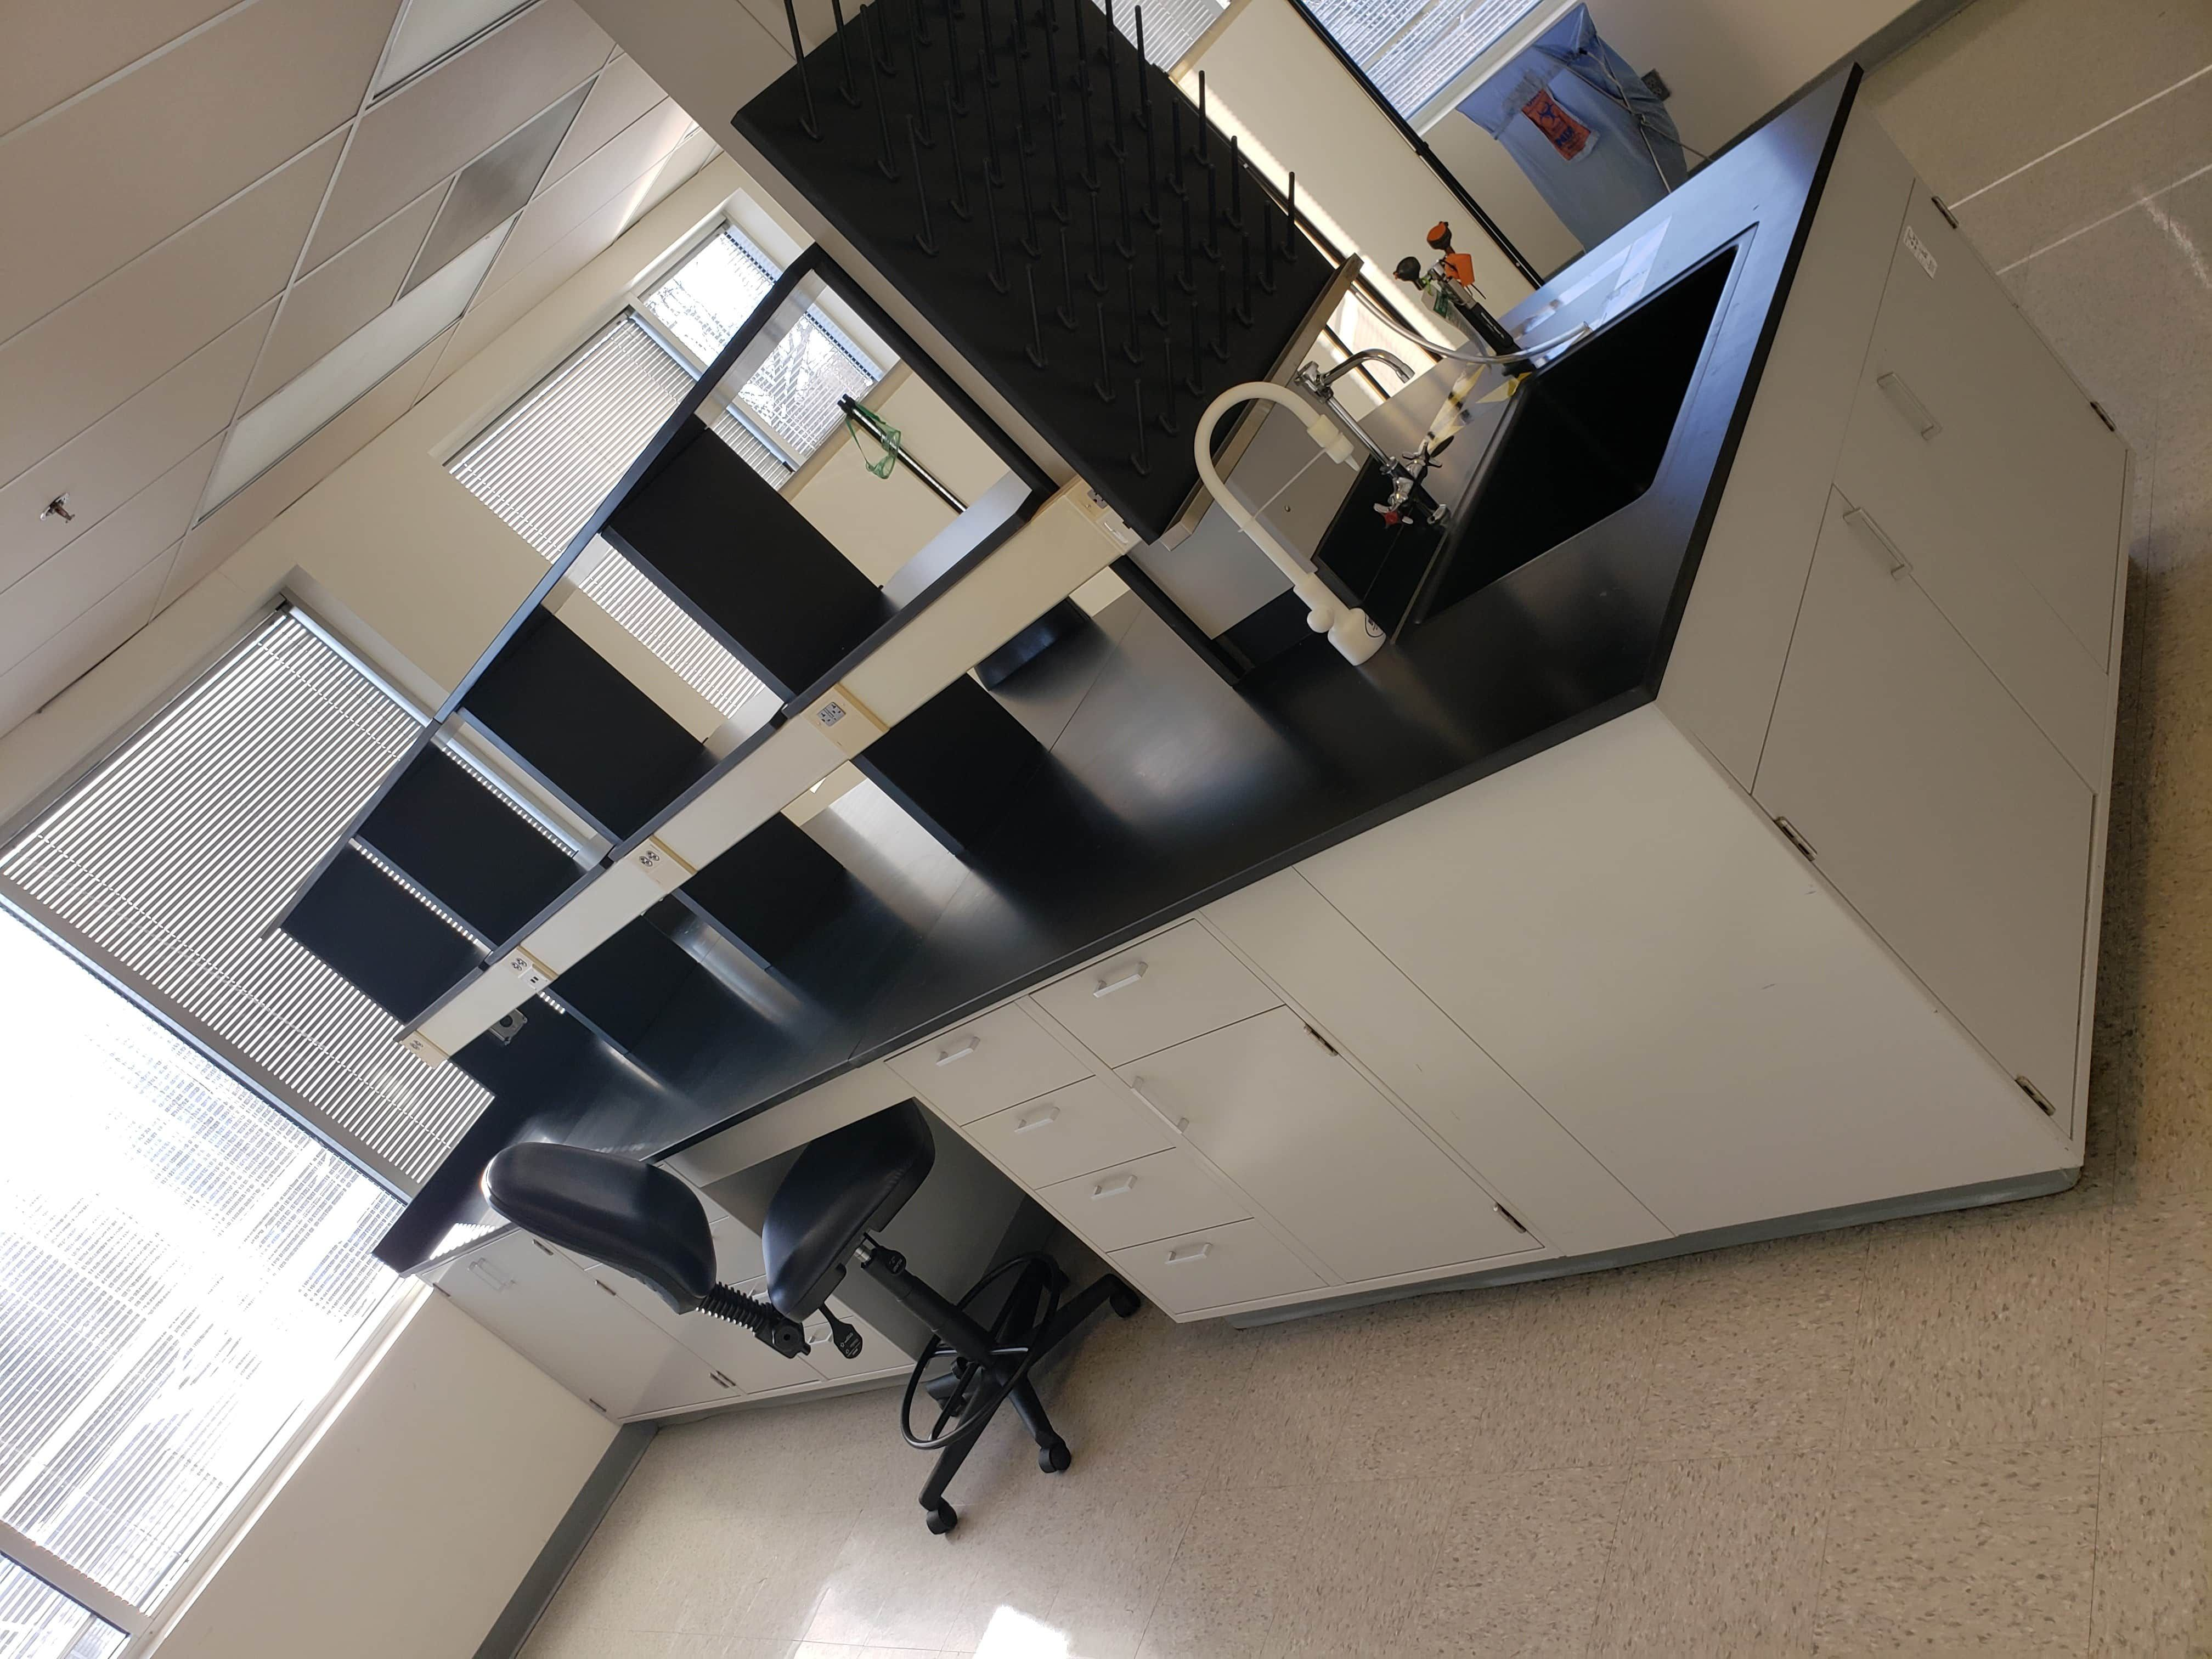 14.5 foot Metal casework island with sink and shelving (Pre-owned)